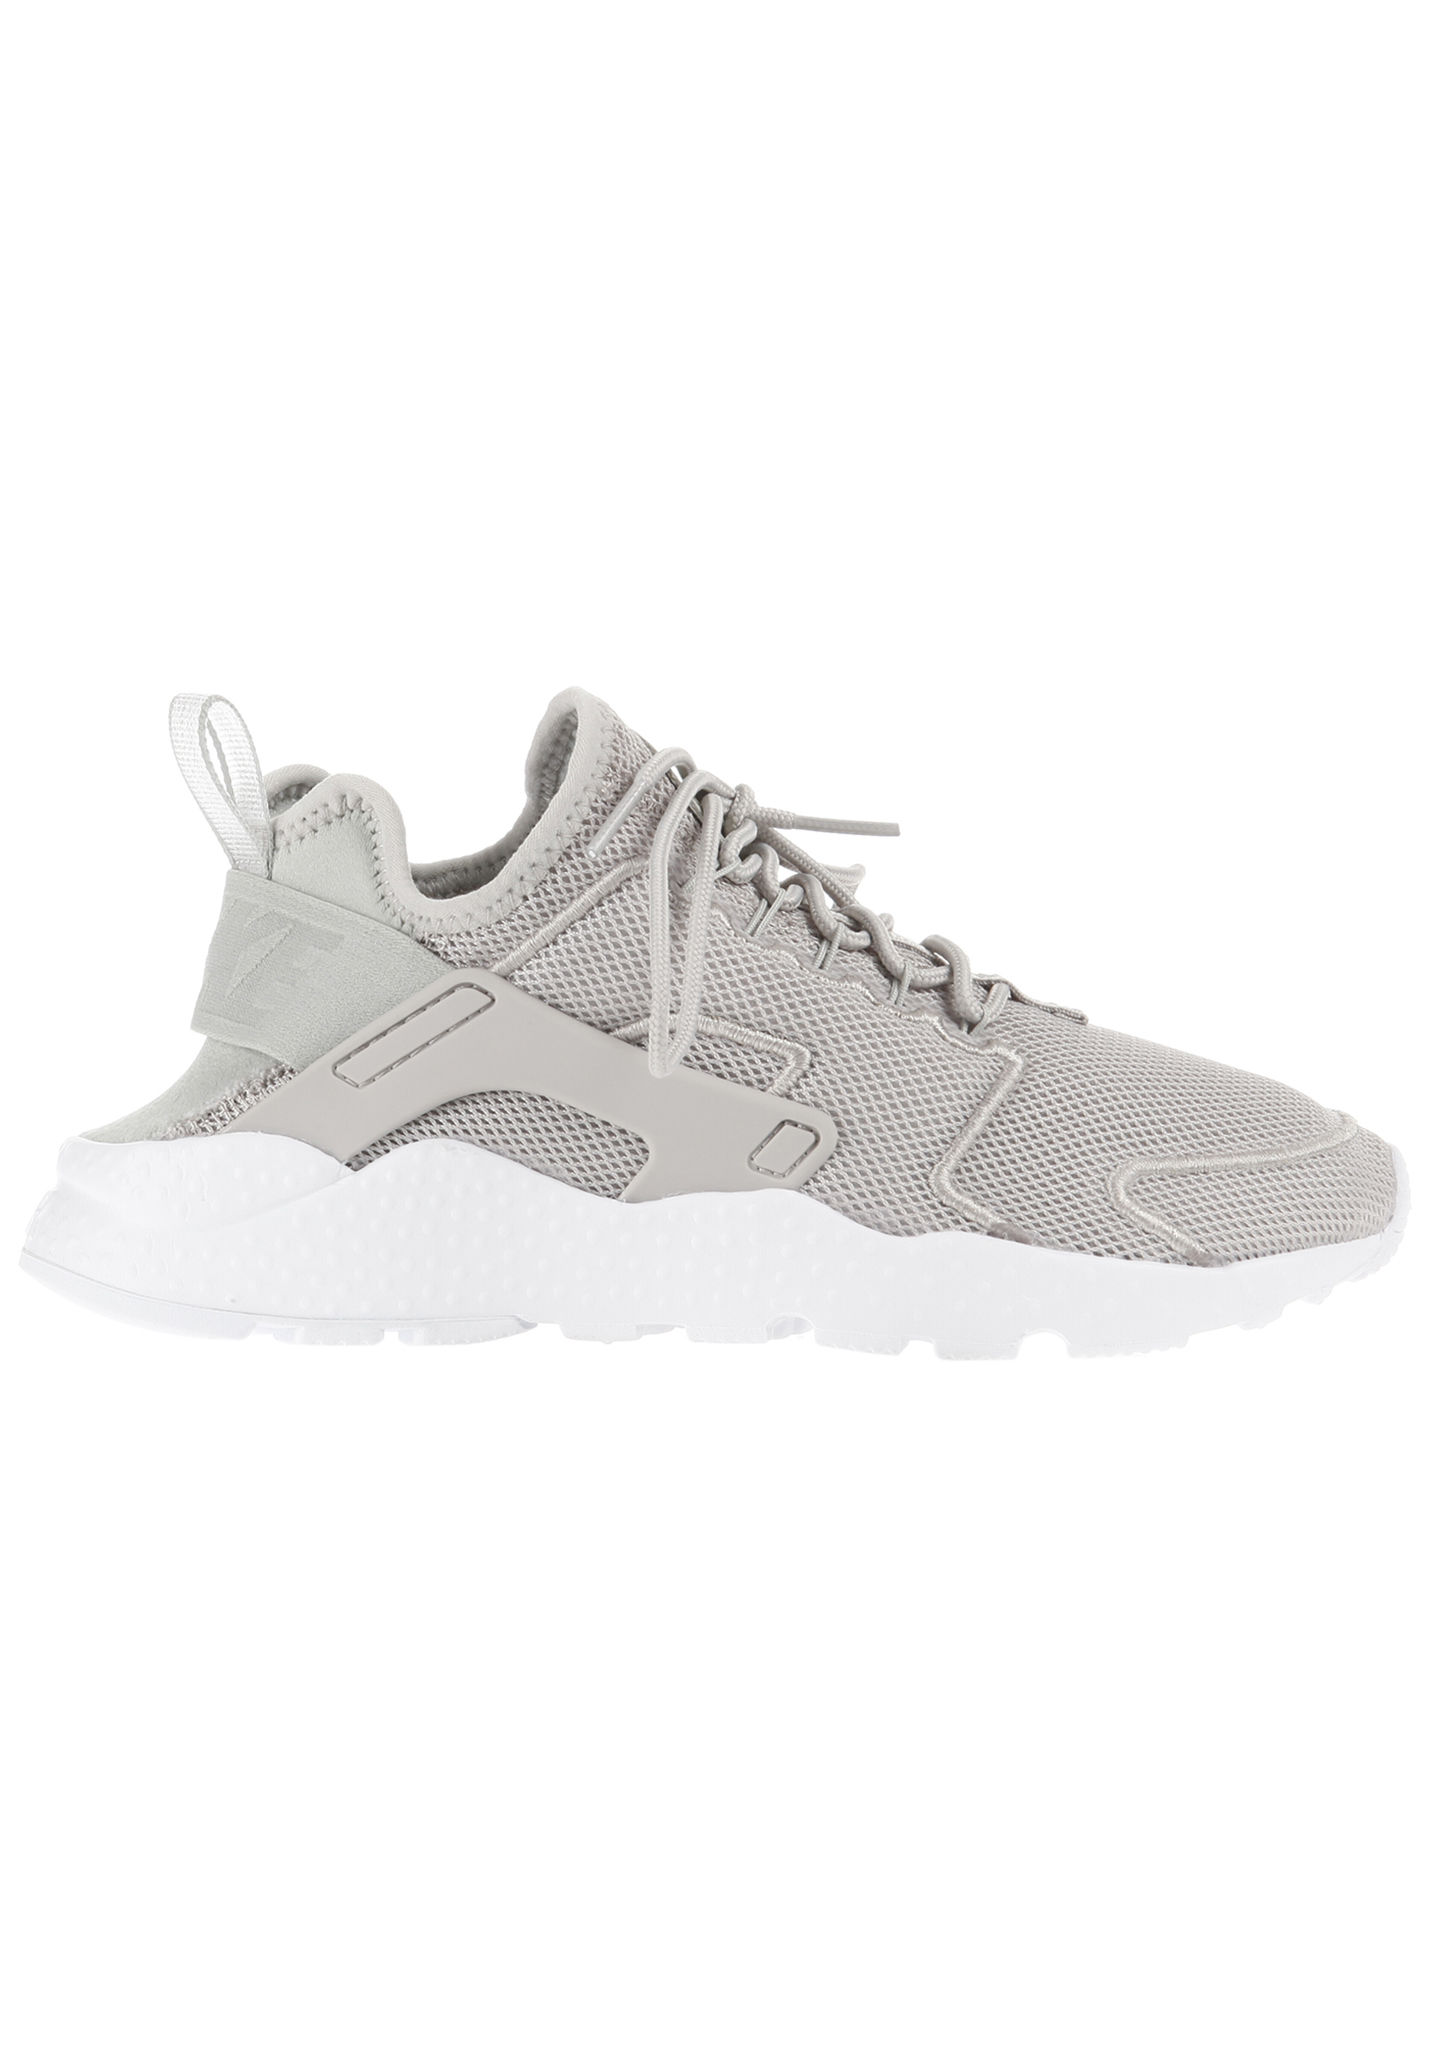 san francisco c07fa 18206 NIKE SPORTSWEAR Air Huarache Run Ultra BR - Sneakers for Women - Grey -  Planet Sports